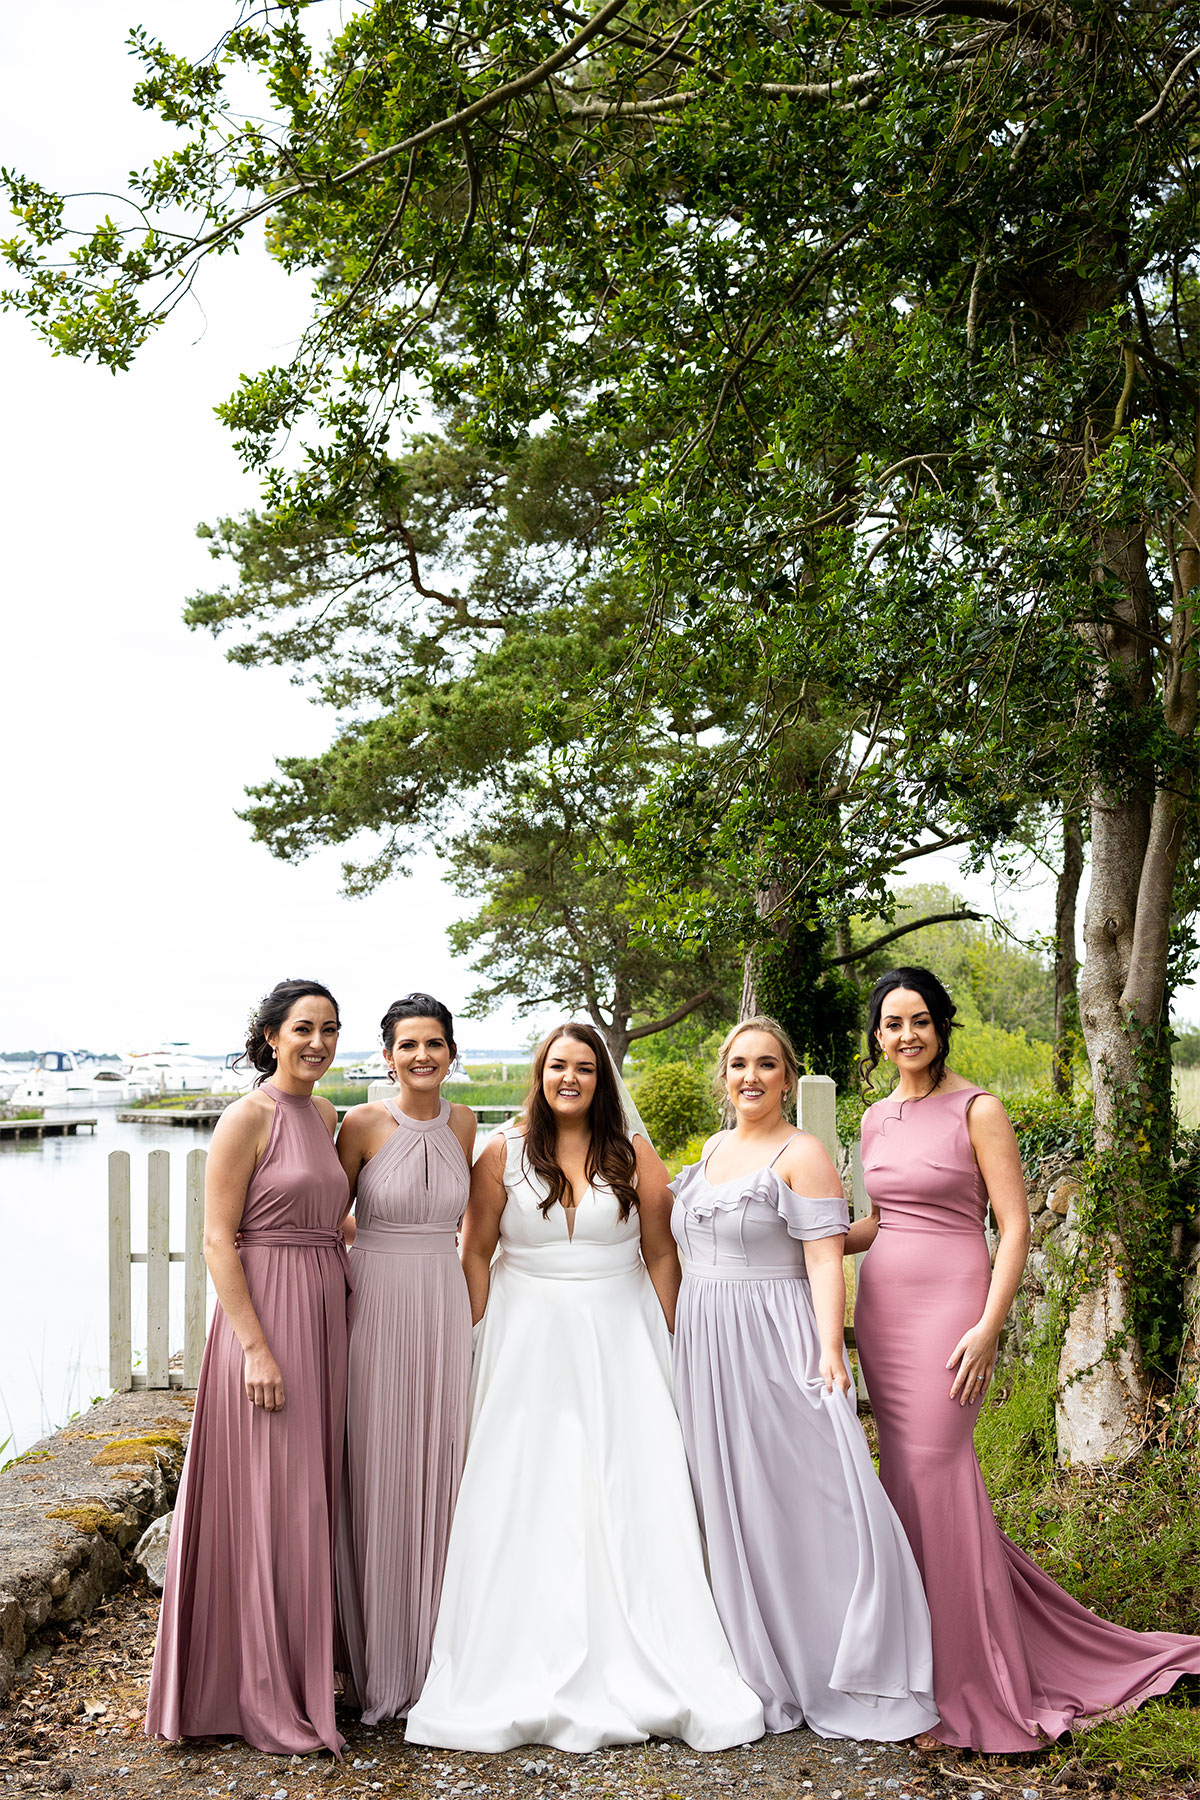 Coolbawn Quay Wedding Photographer - Bridal Party